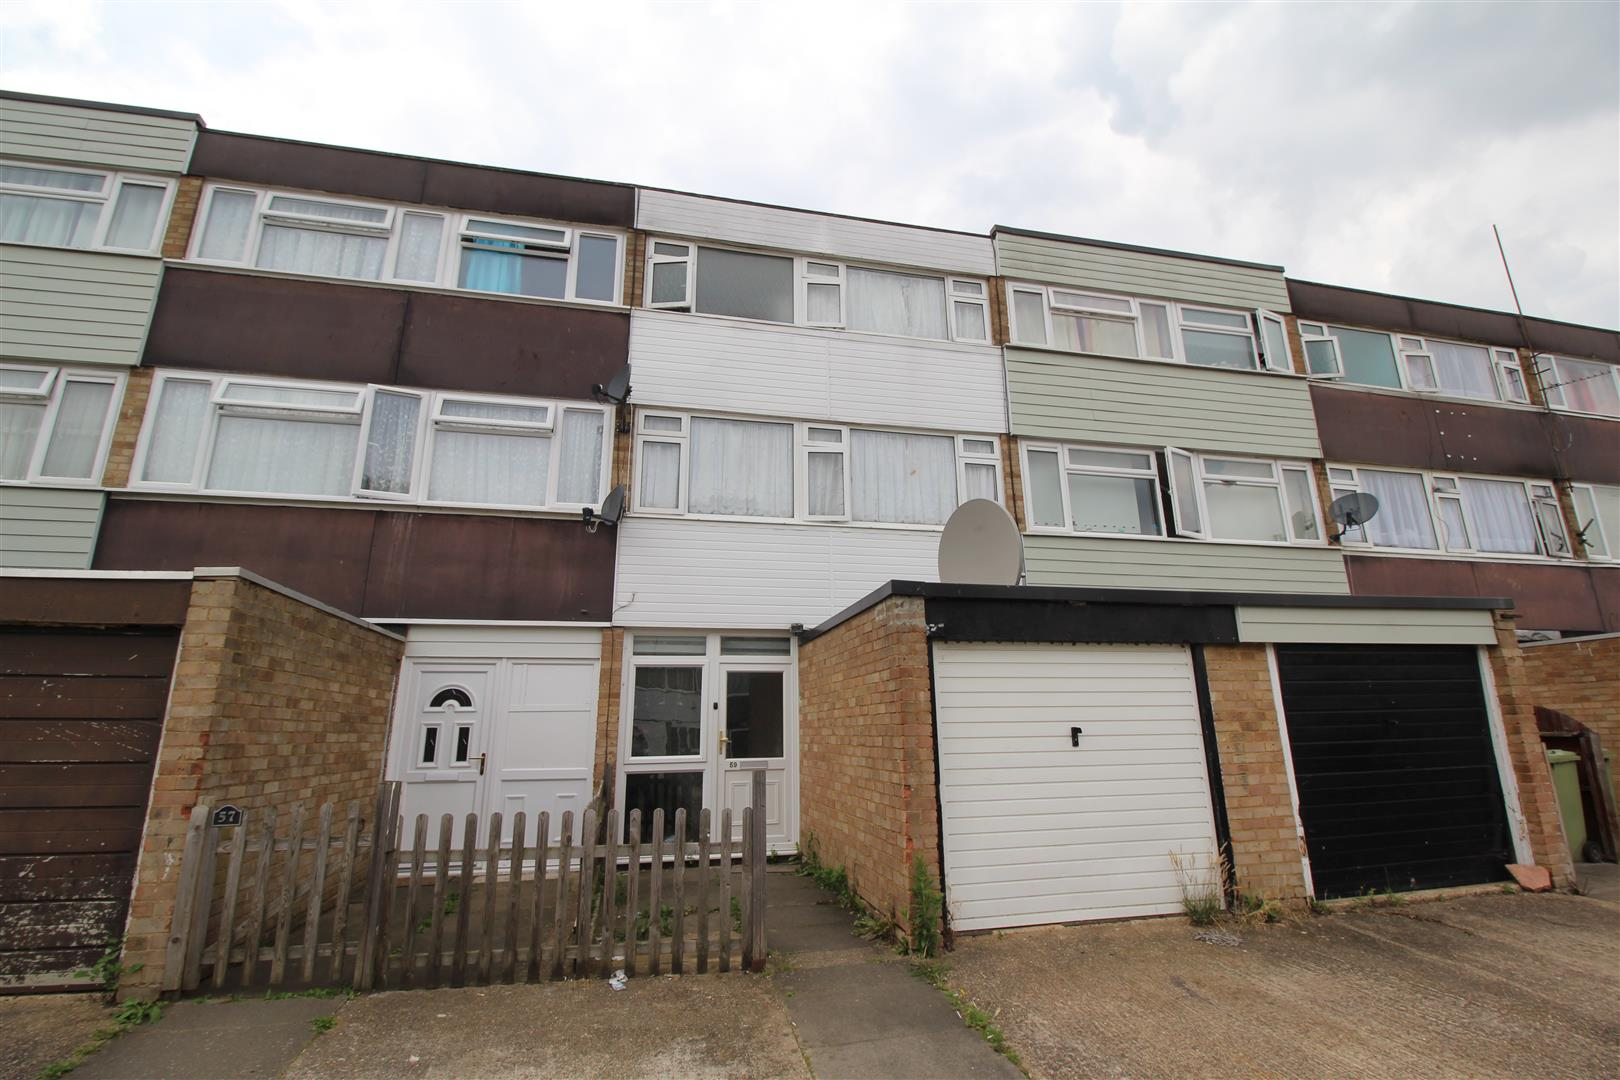 Four bedroom, three storey townhouse located on the Lakes Estate in Bletchley. The property benefits from Off Road Parking, Garage & Three Toilets.